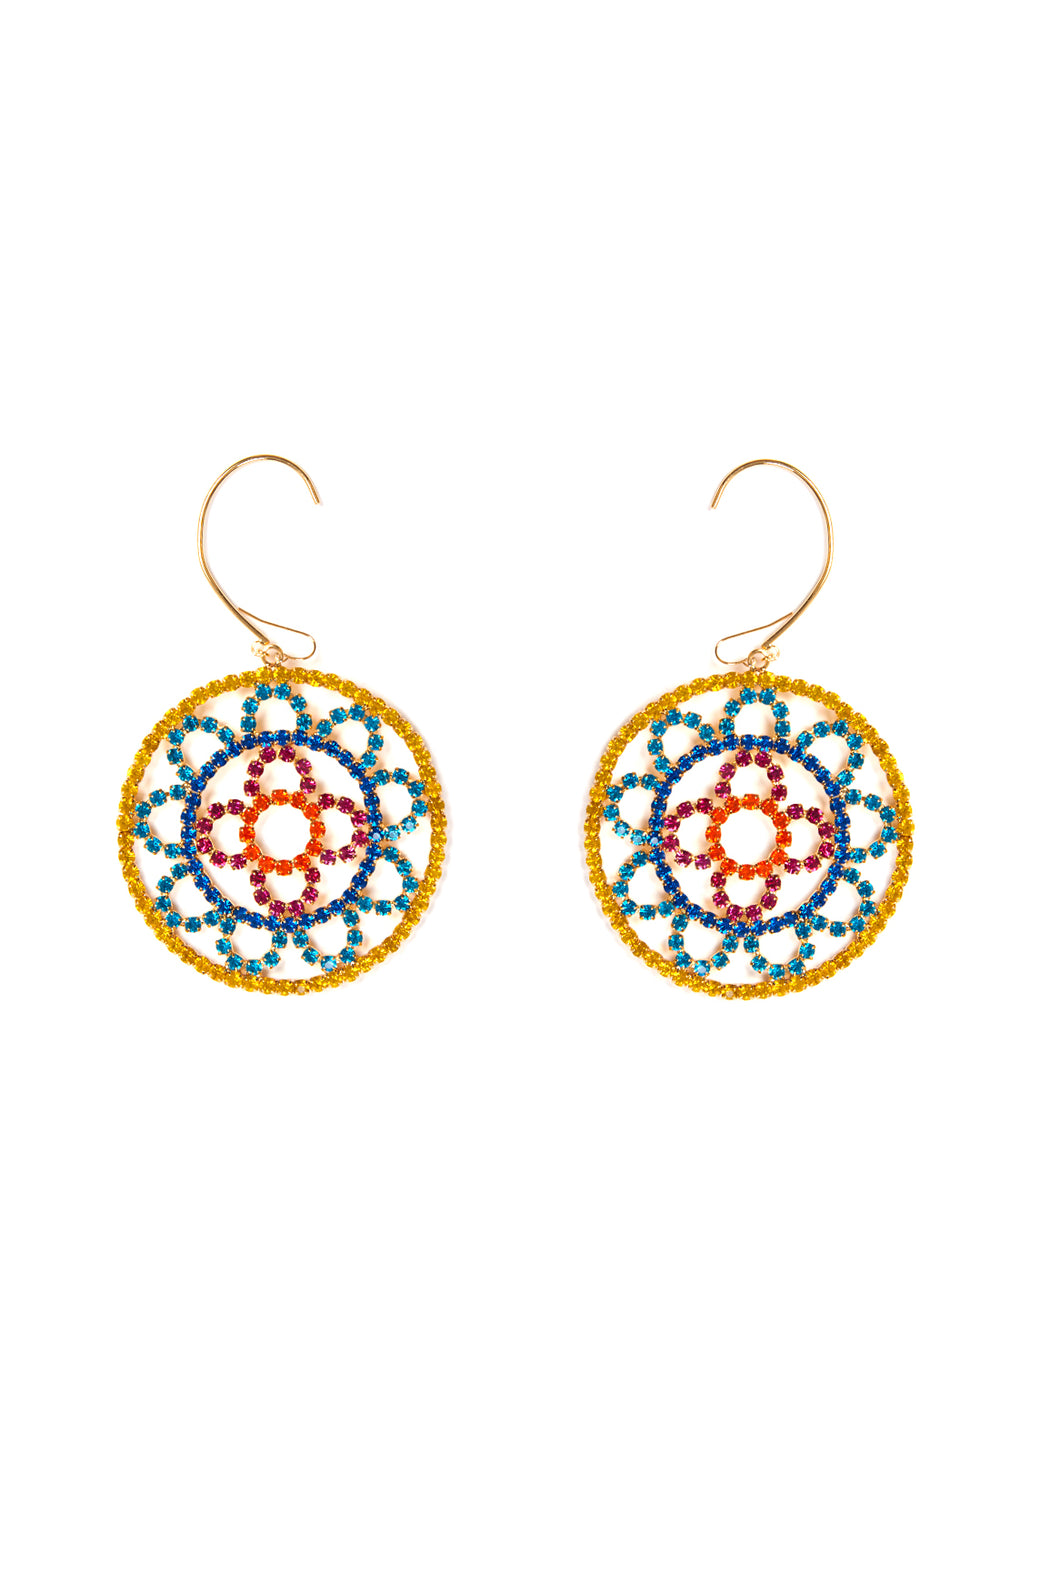 Crystal Cupchain Crochet Earrings - Multi